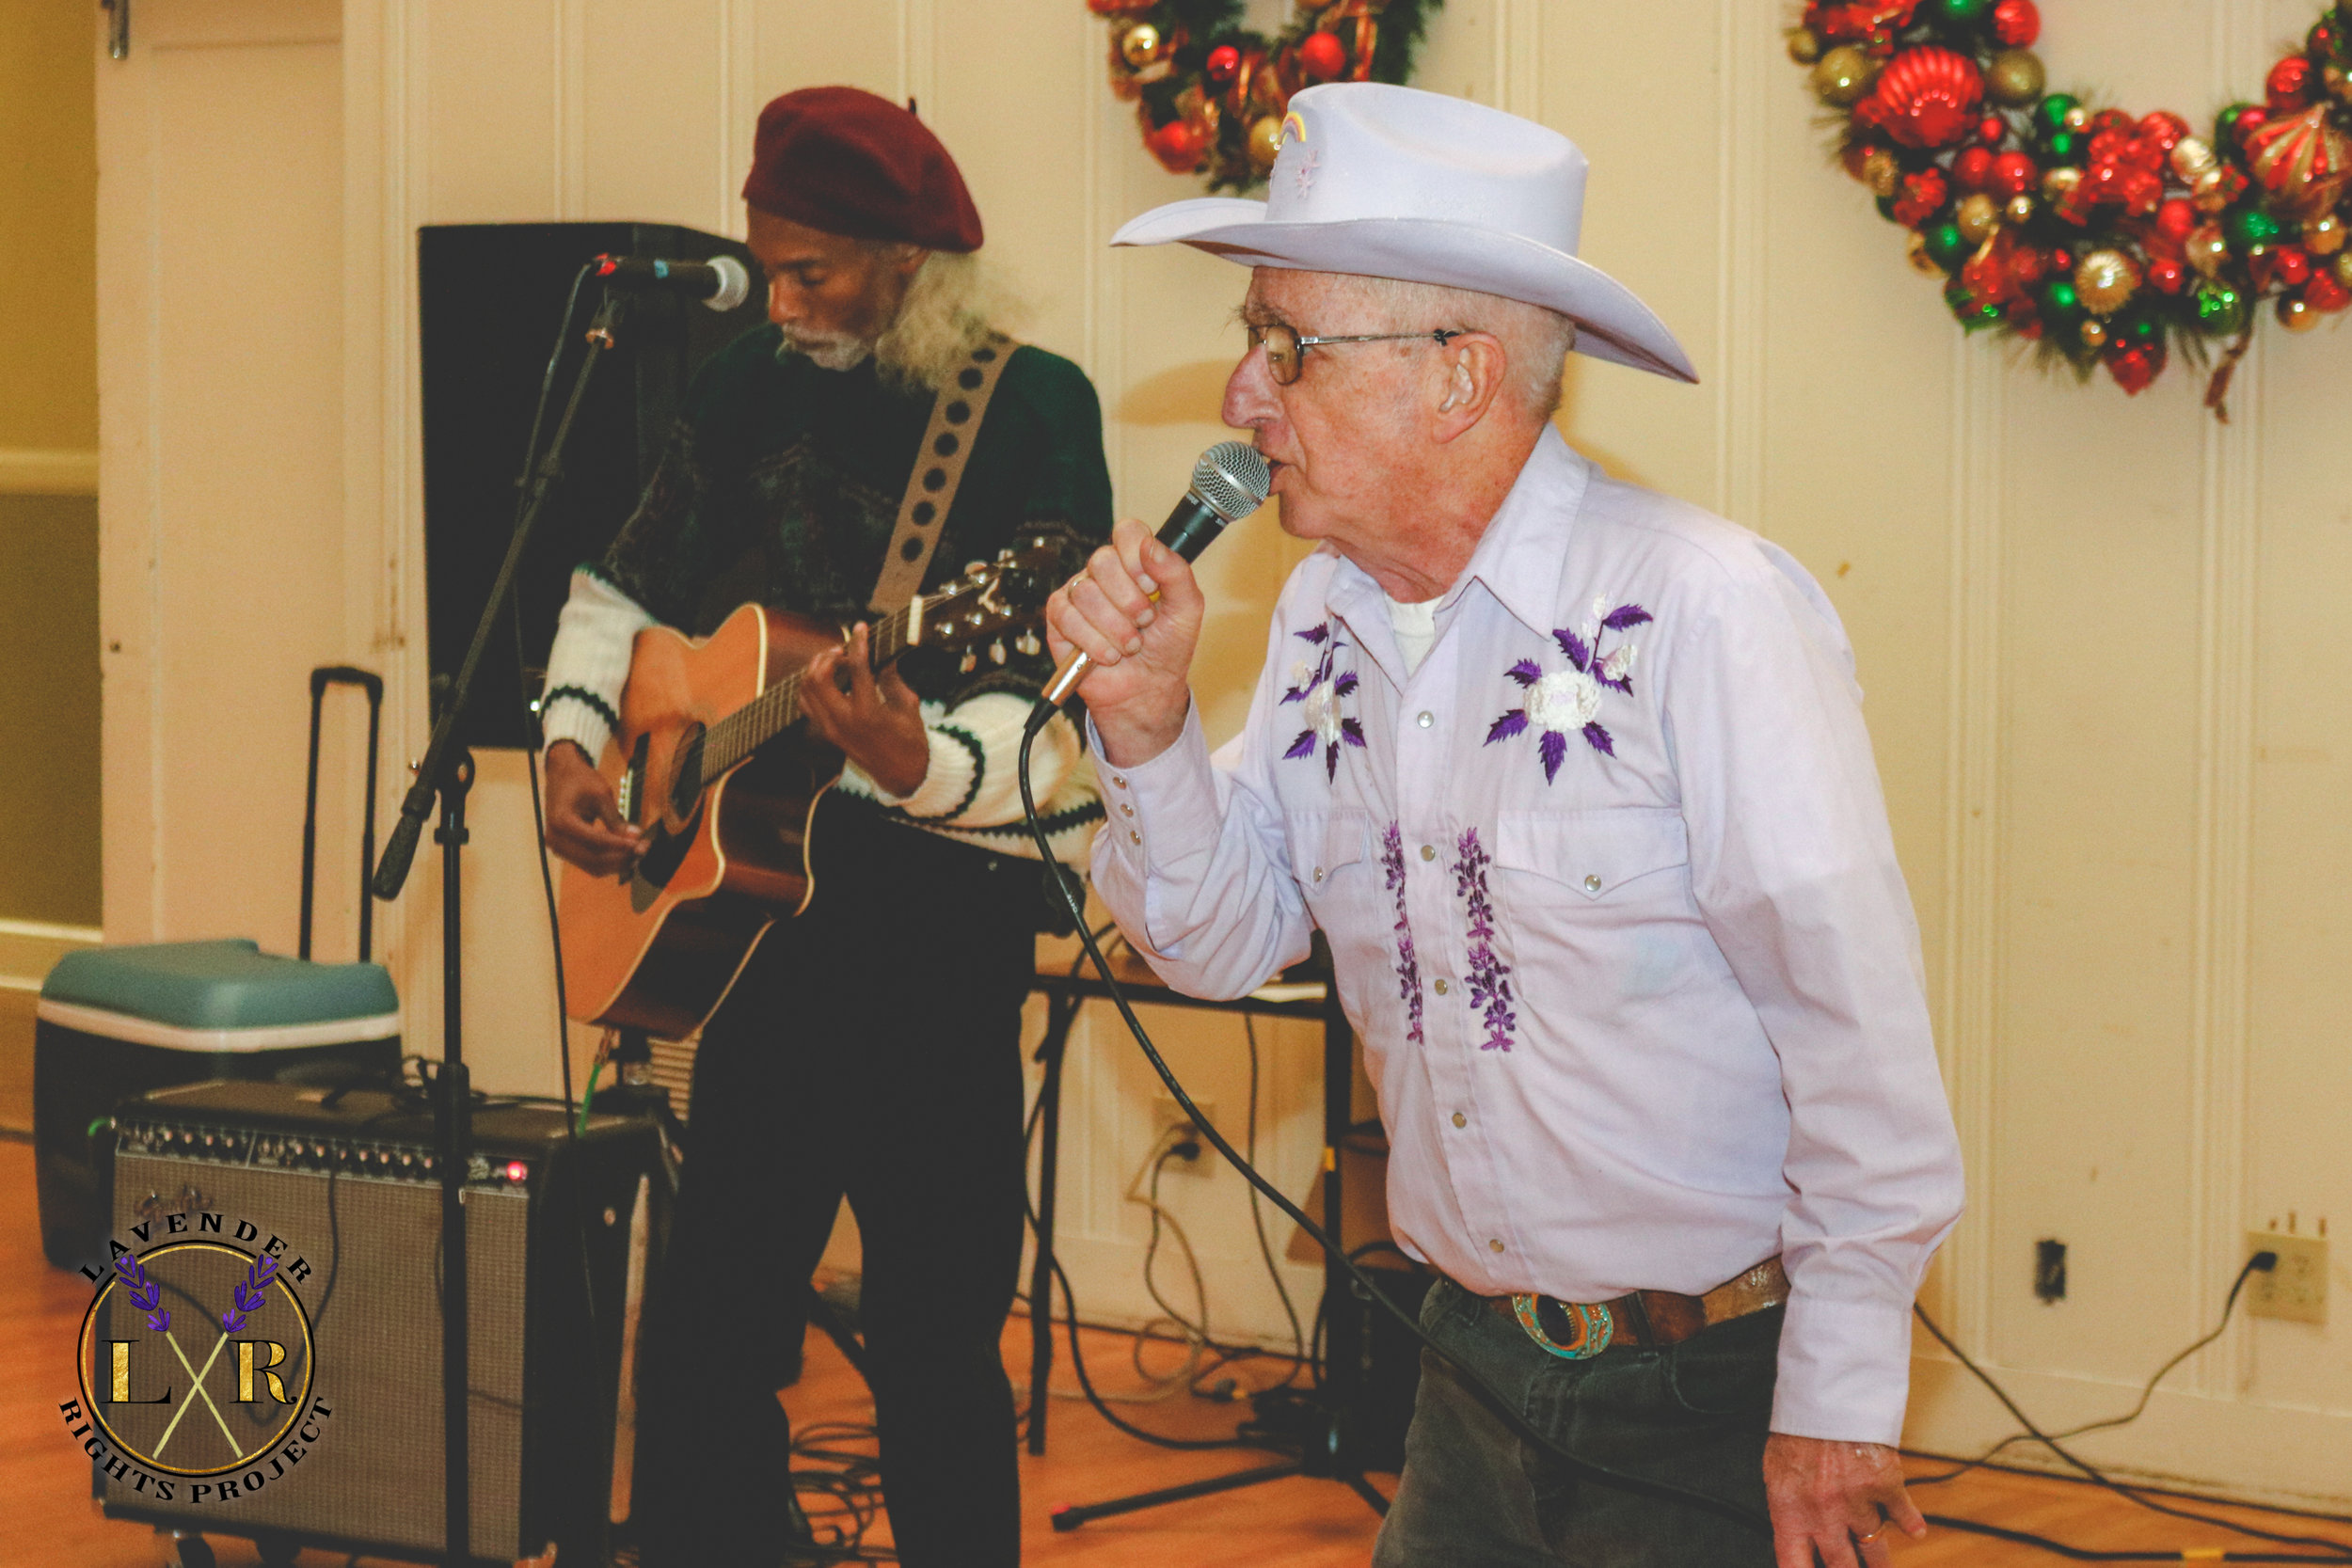 Performers: Lavender Country